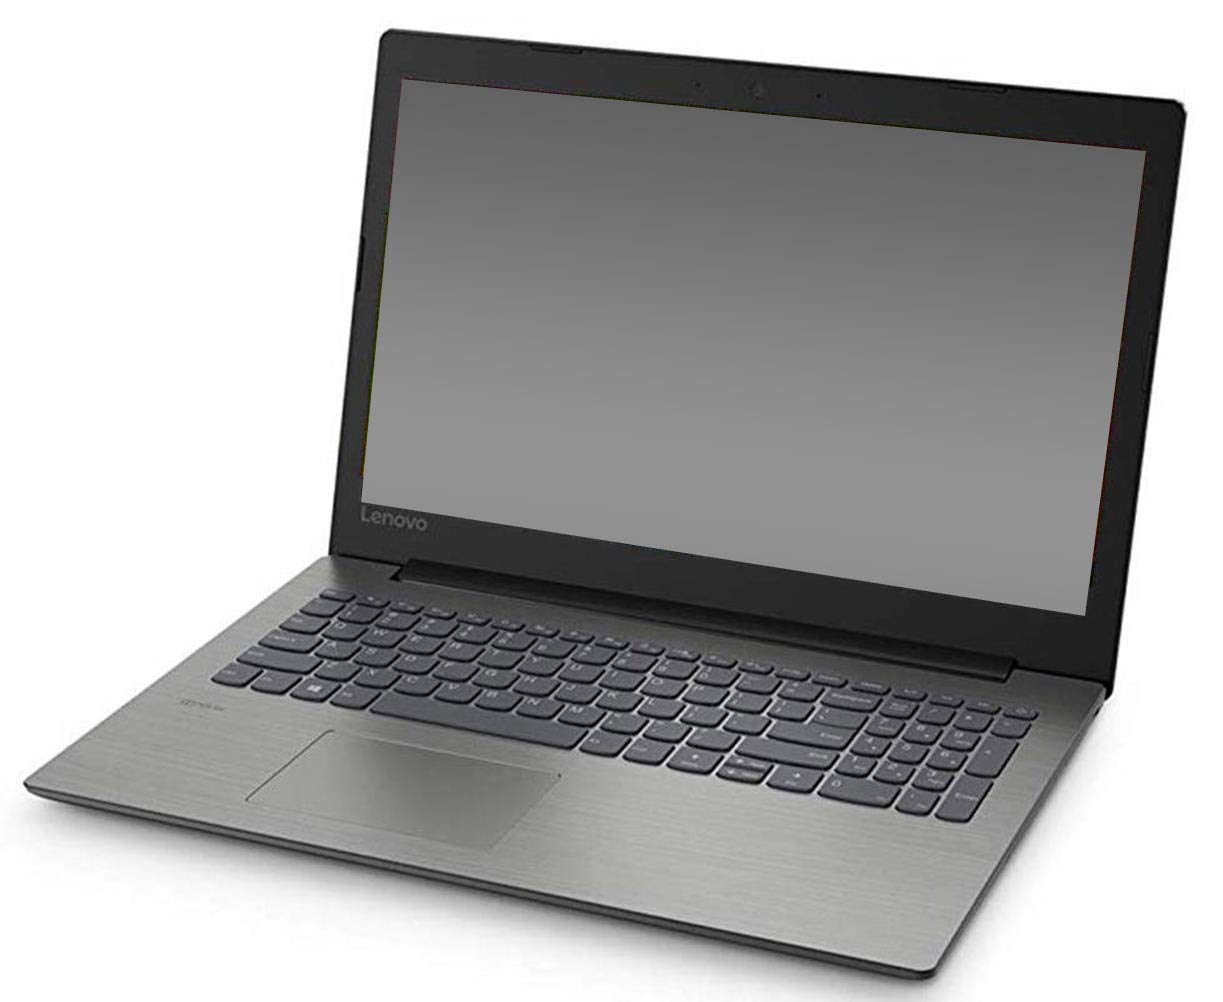 Buy Lenovo Ideapad 330 AMD A6 Processor 15.6-inch Laptop (4GB/1TB  HDD/DOS/Onyx Black/with DVD-RW/2.2kg), 81D6007JIN Online at Low Prices in  India - Amazon.in